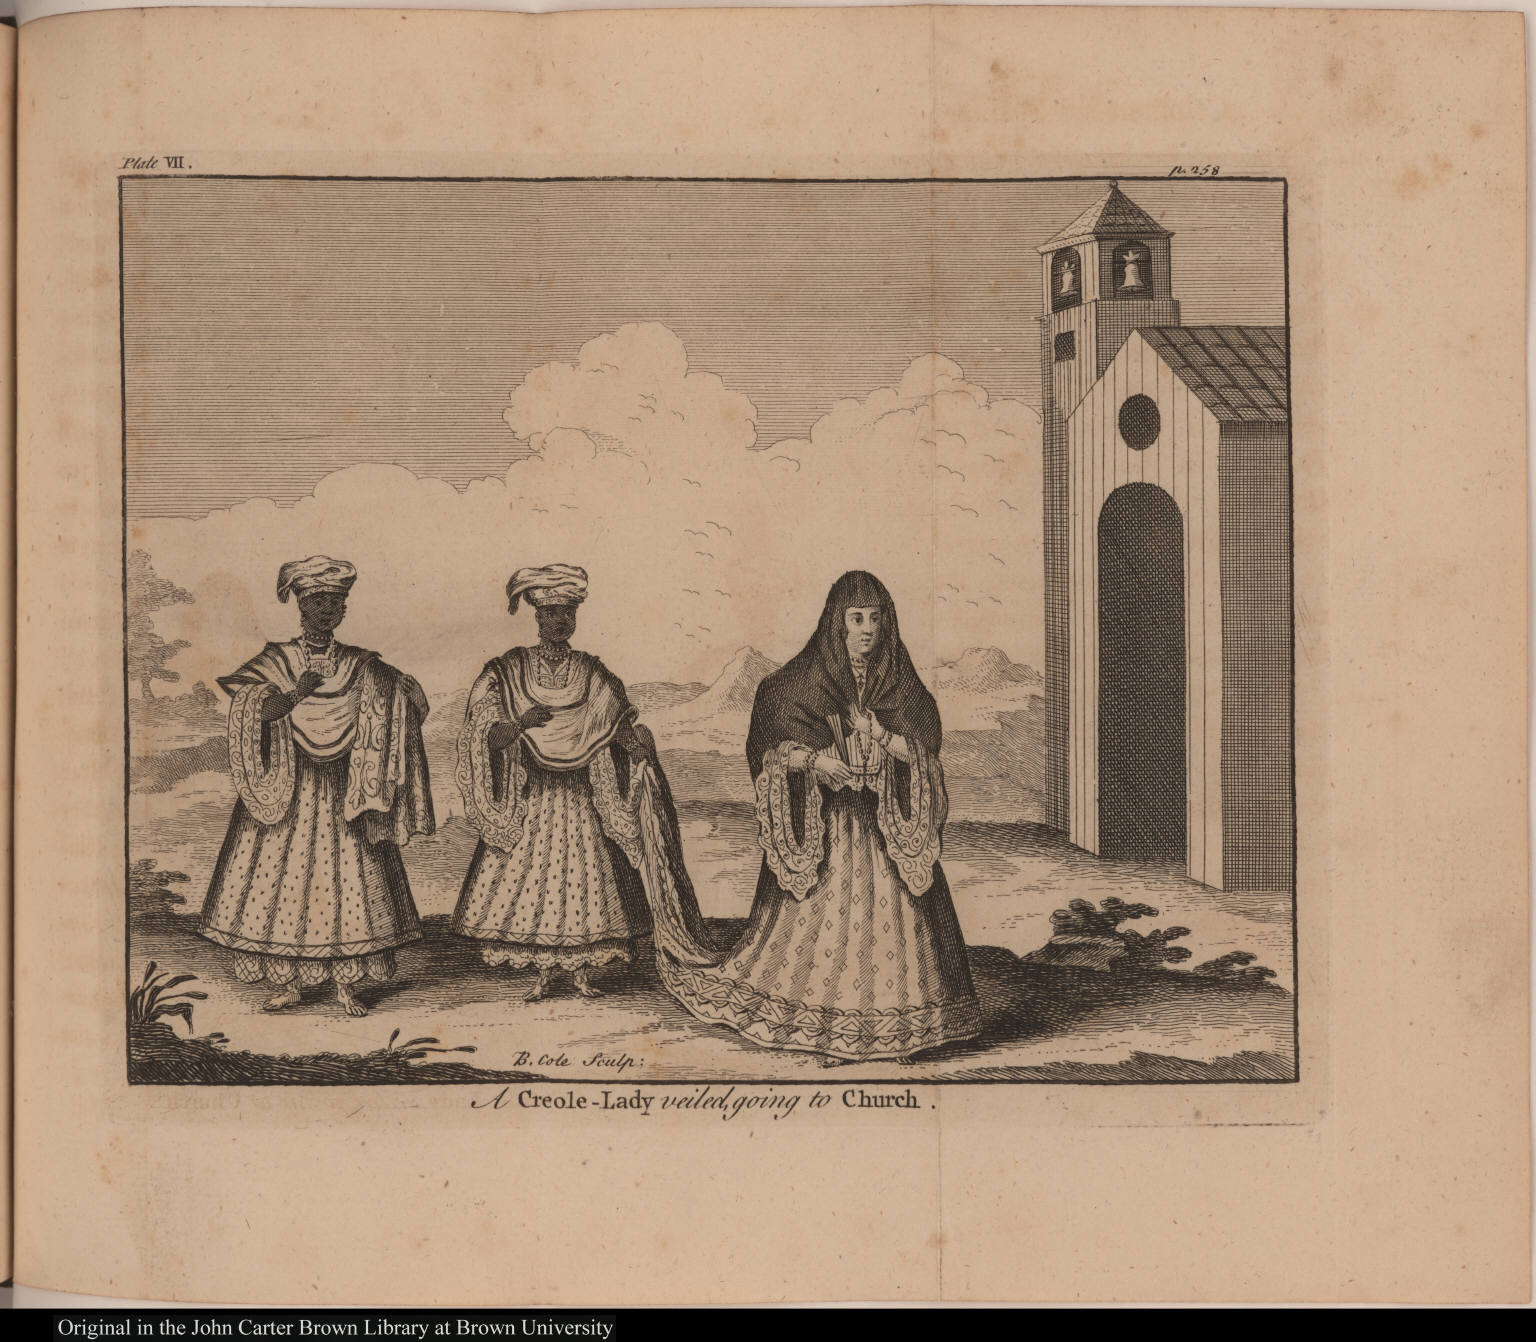 A Creole-Lady veiled, going to Church.